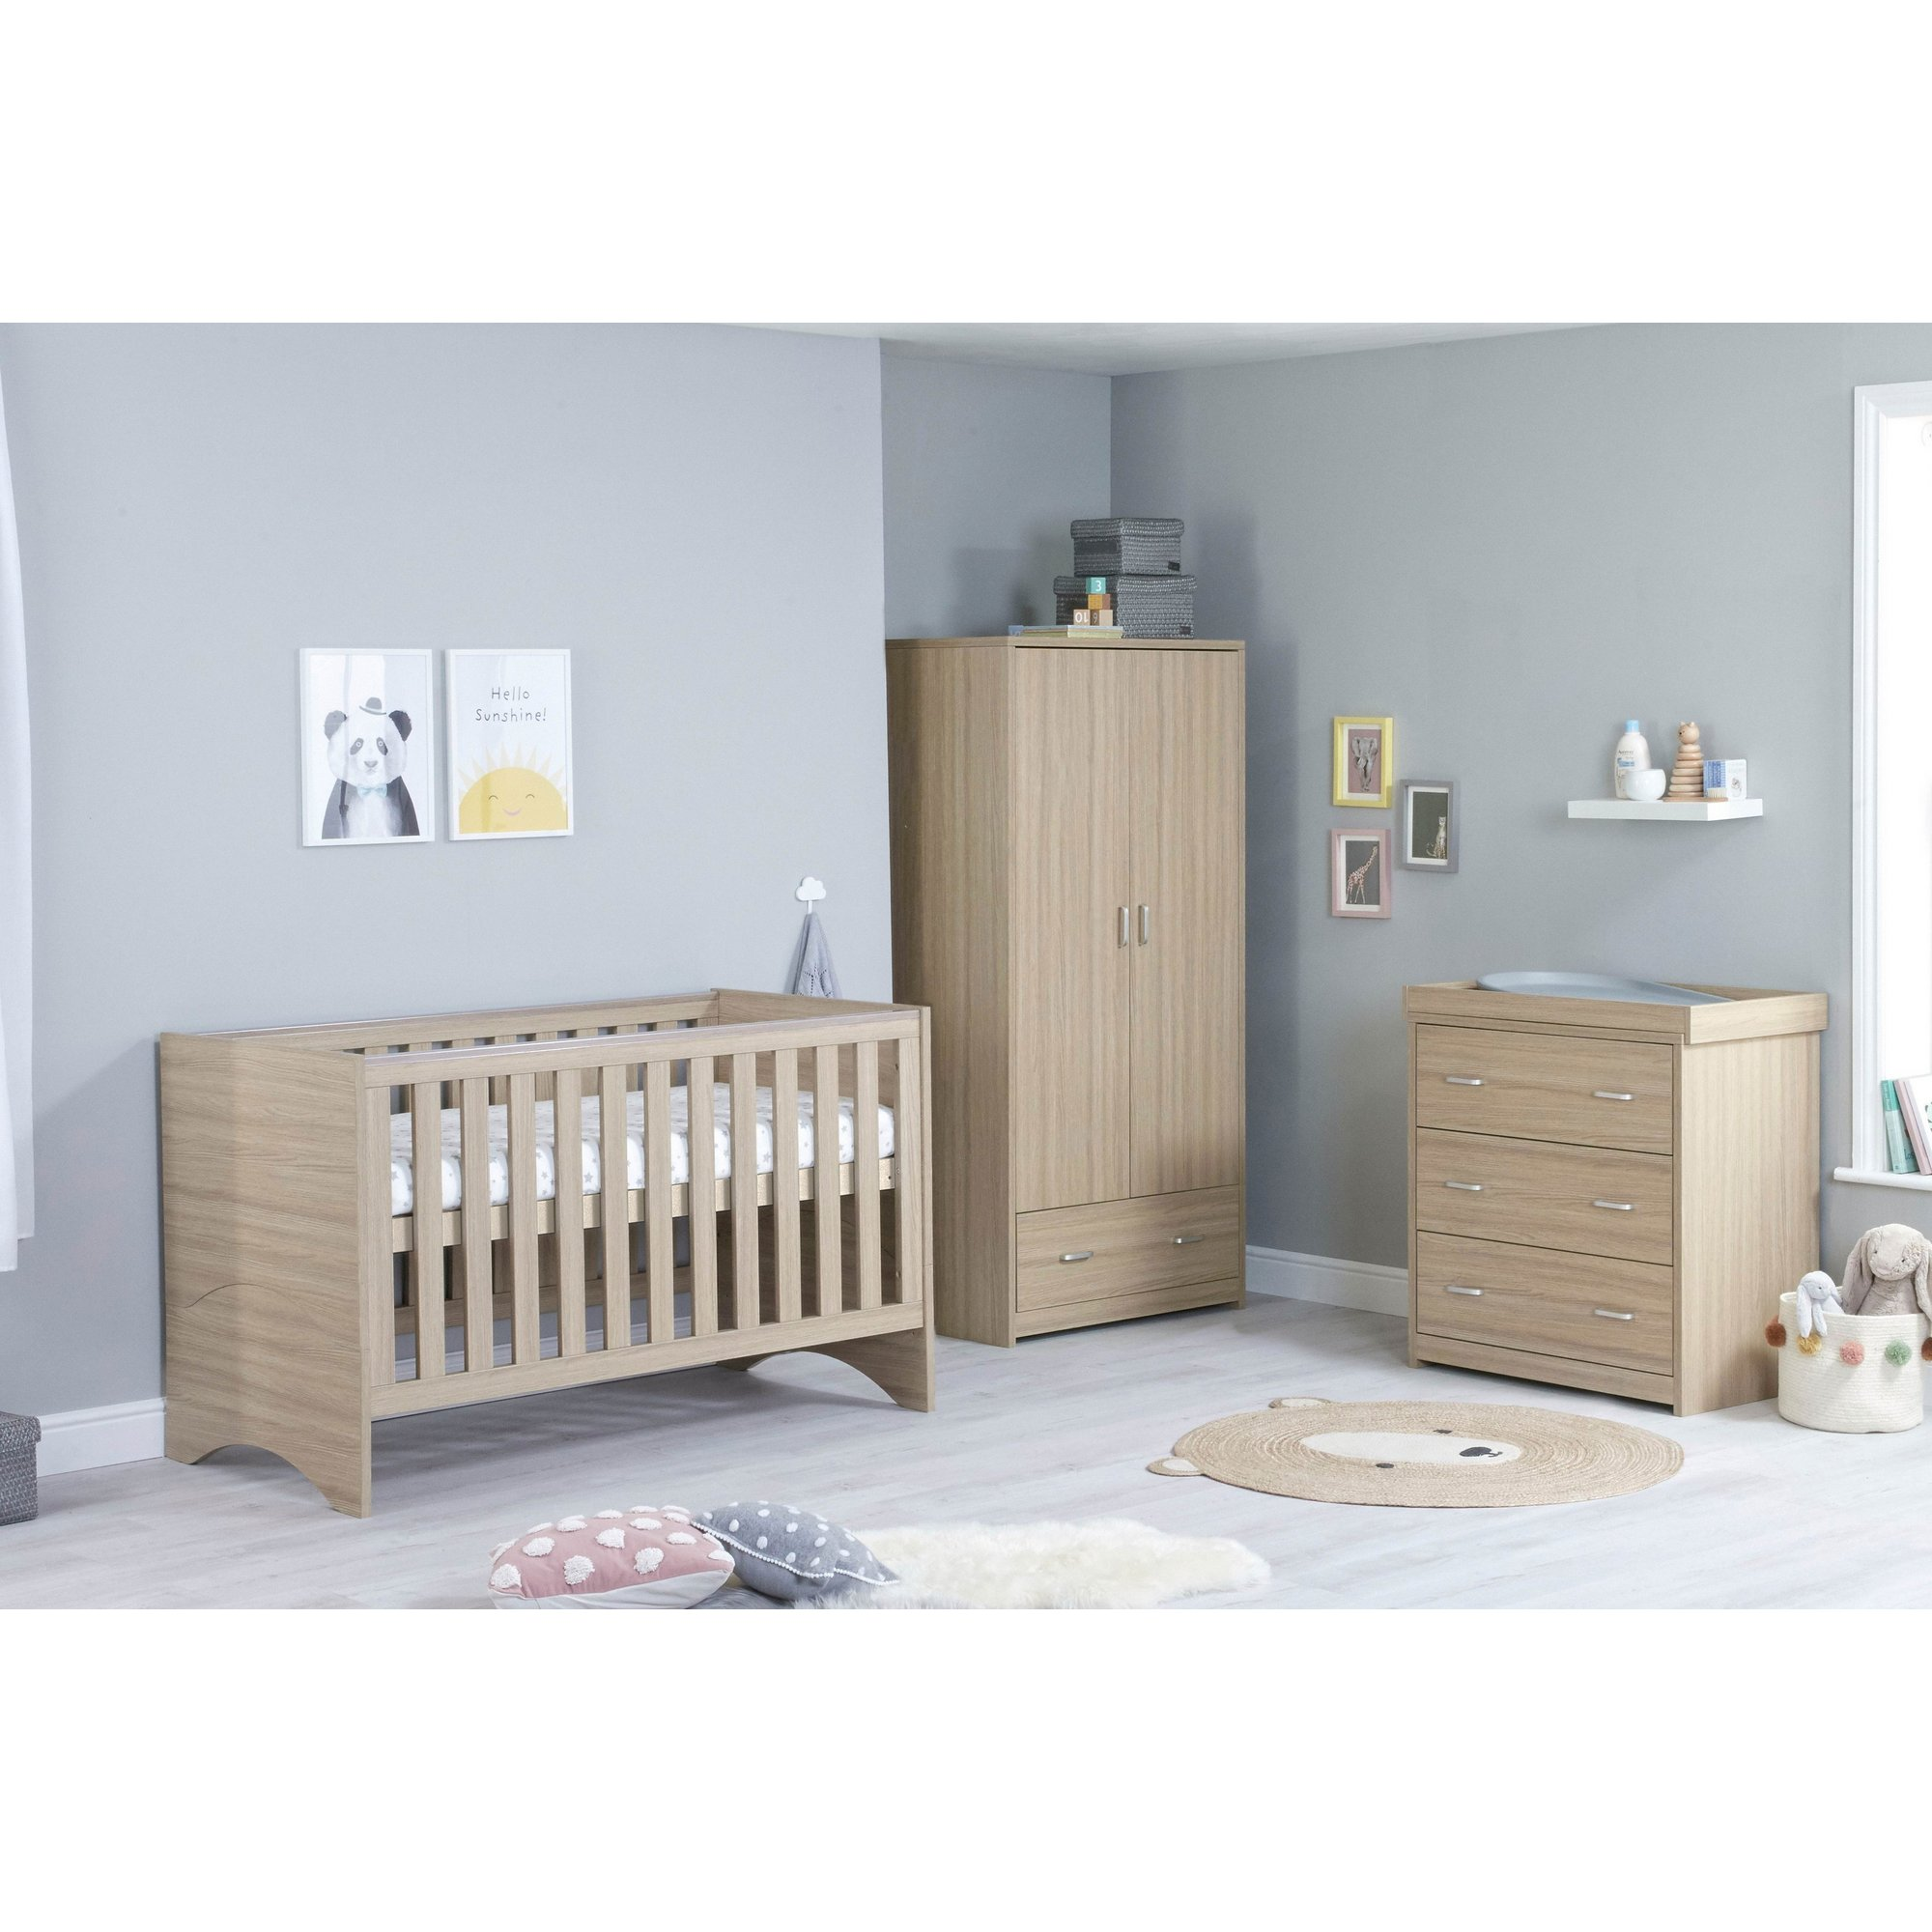 Image of 3 Piece Veni Oak Cot Bed Chest and Wardrobe Room Set